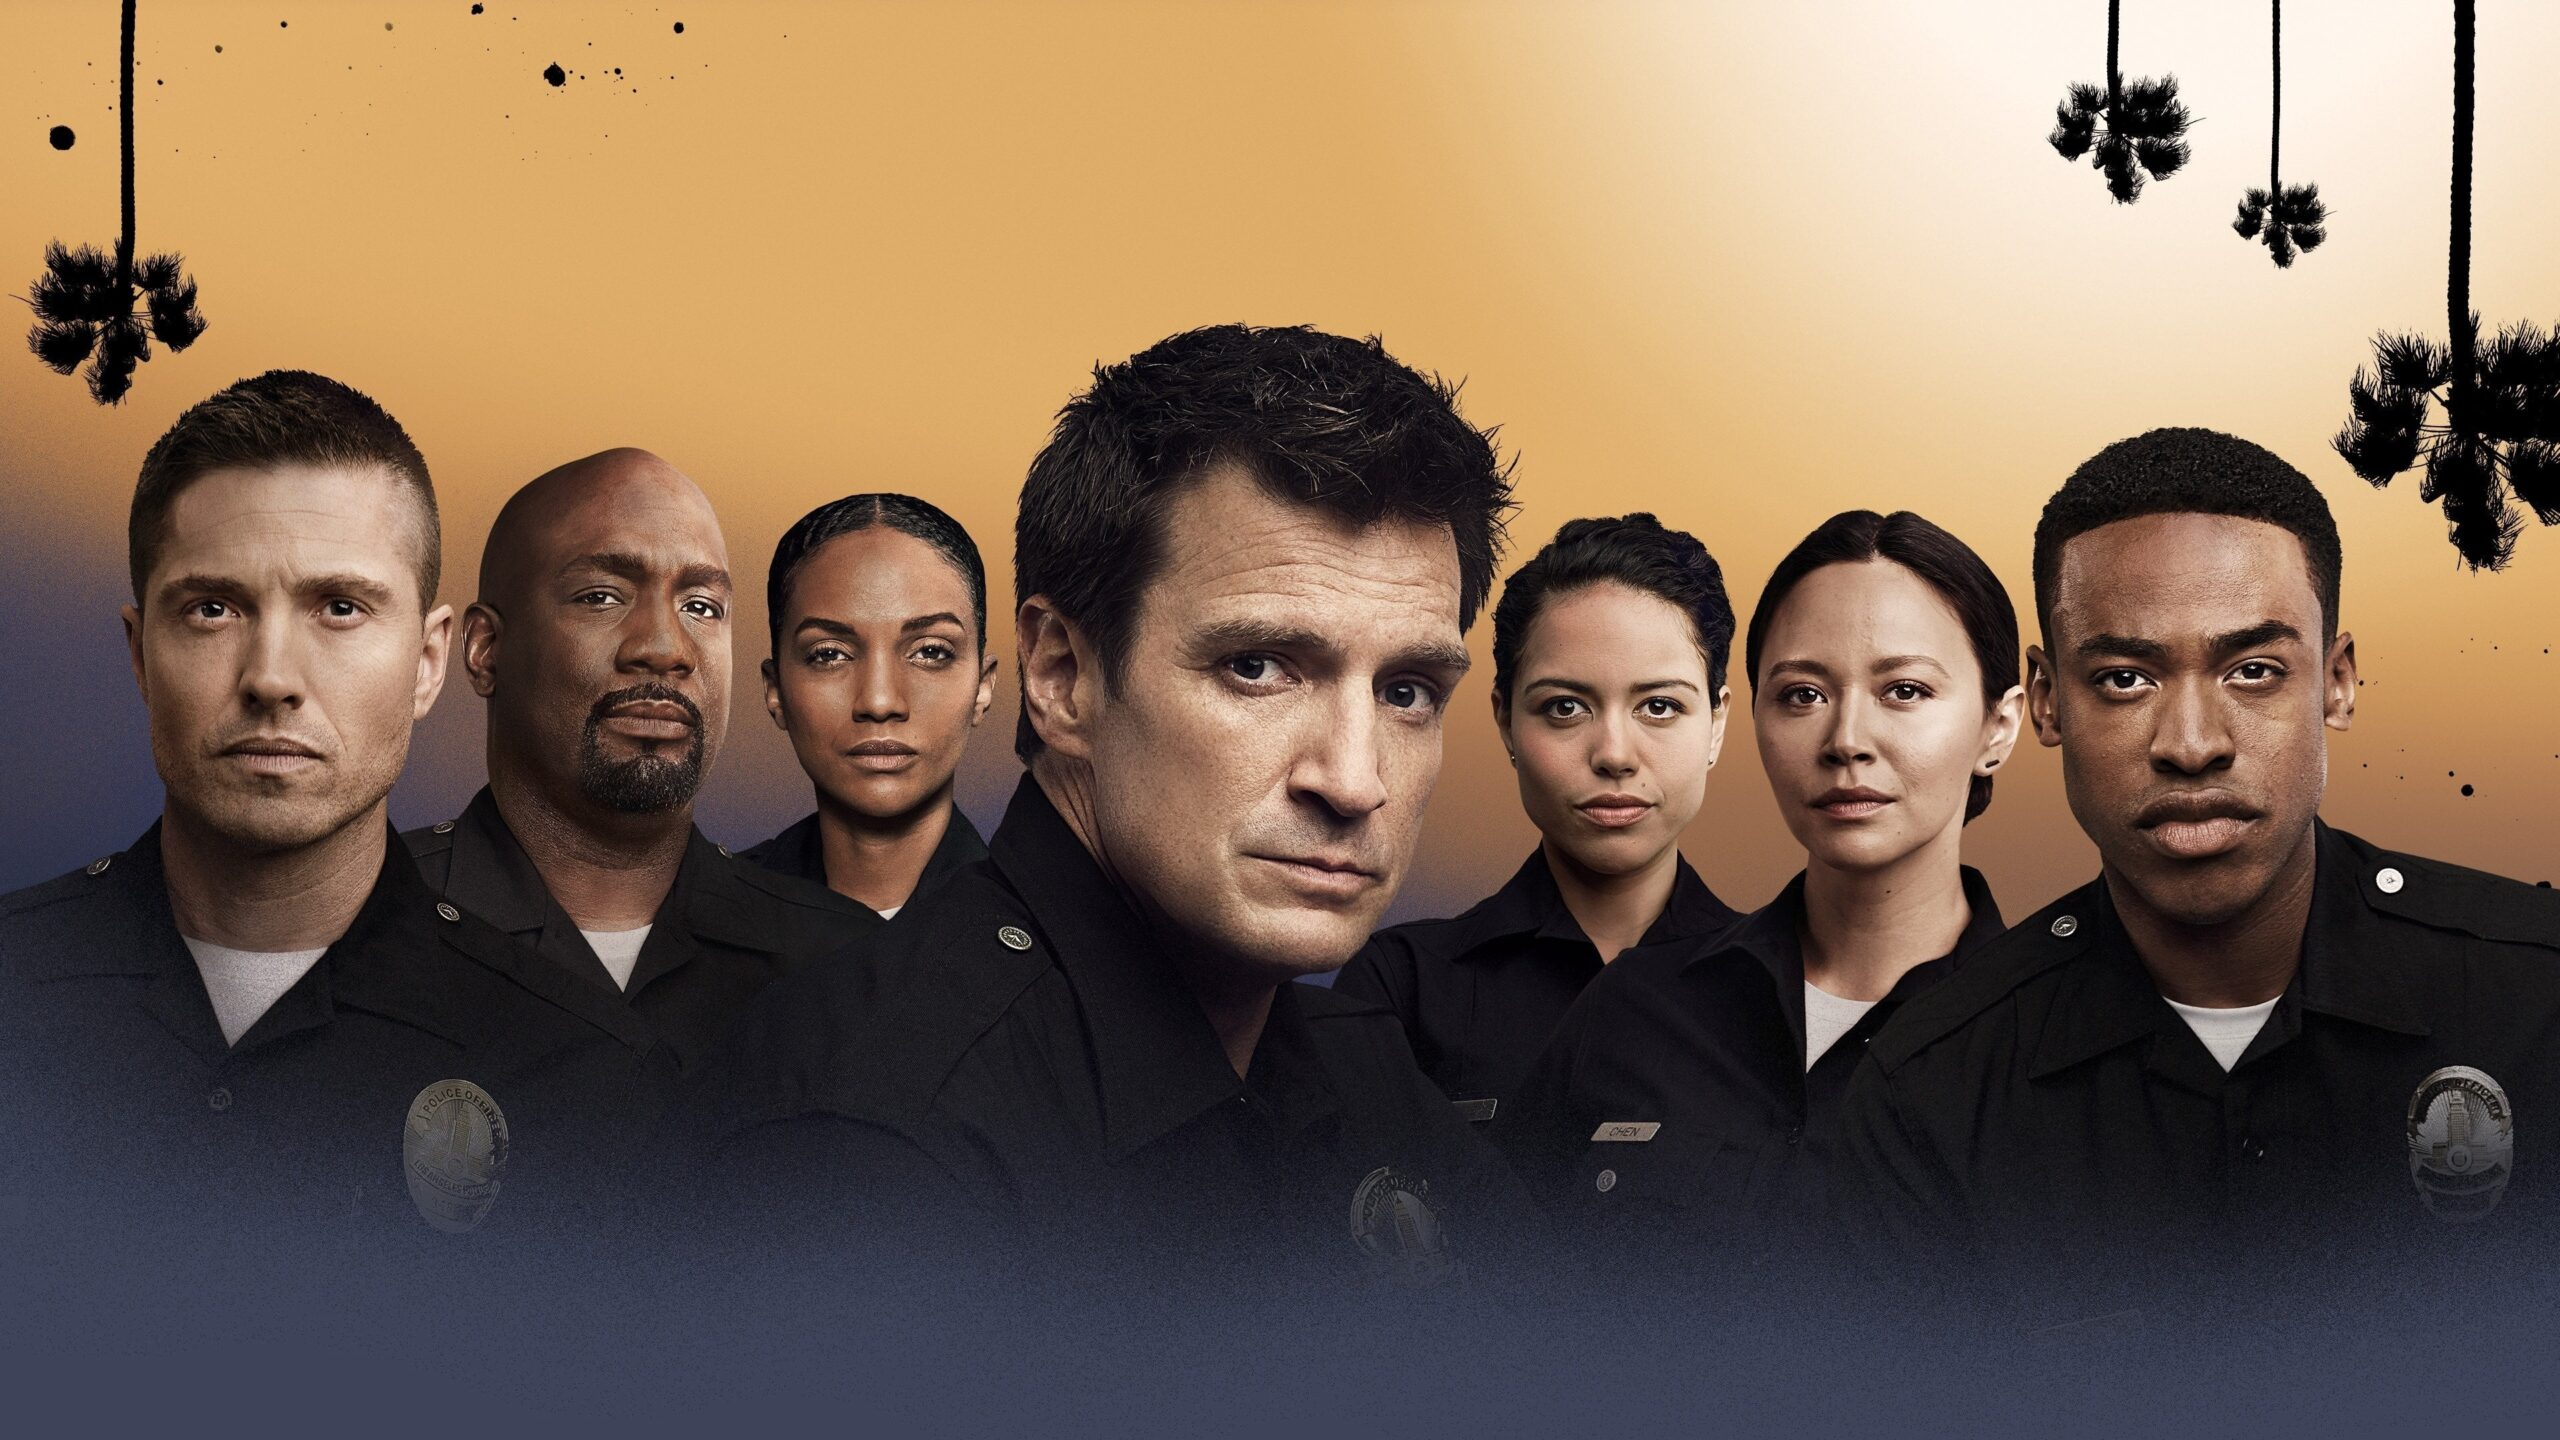 The Rookie Season 3 Episode 4 Promo Of